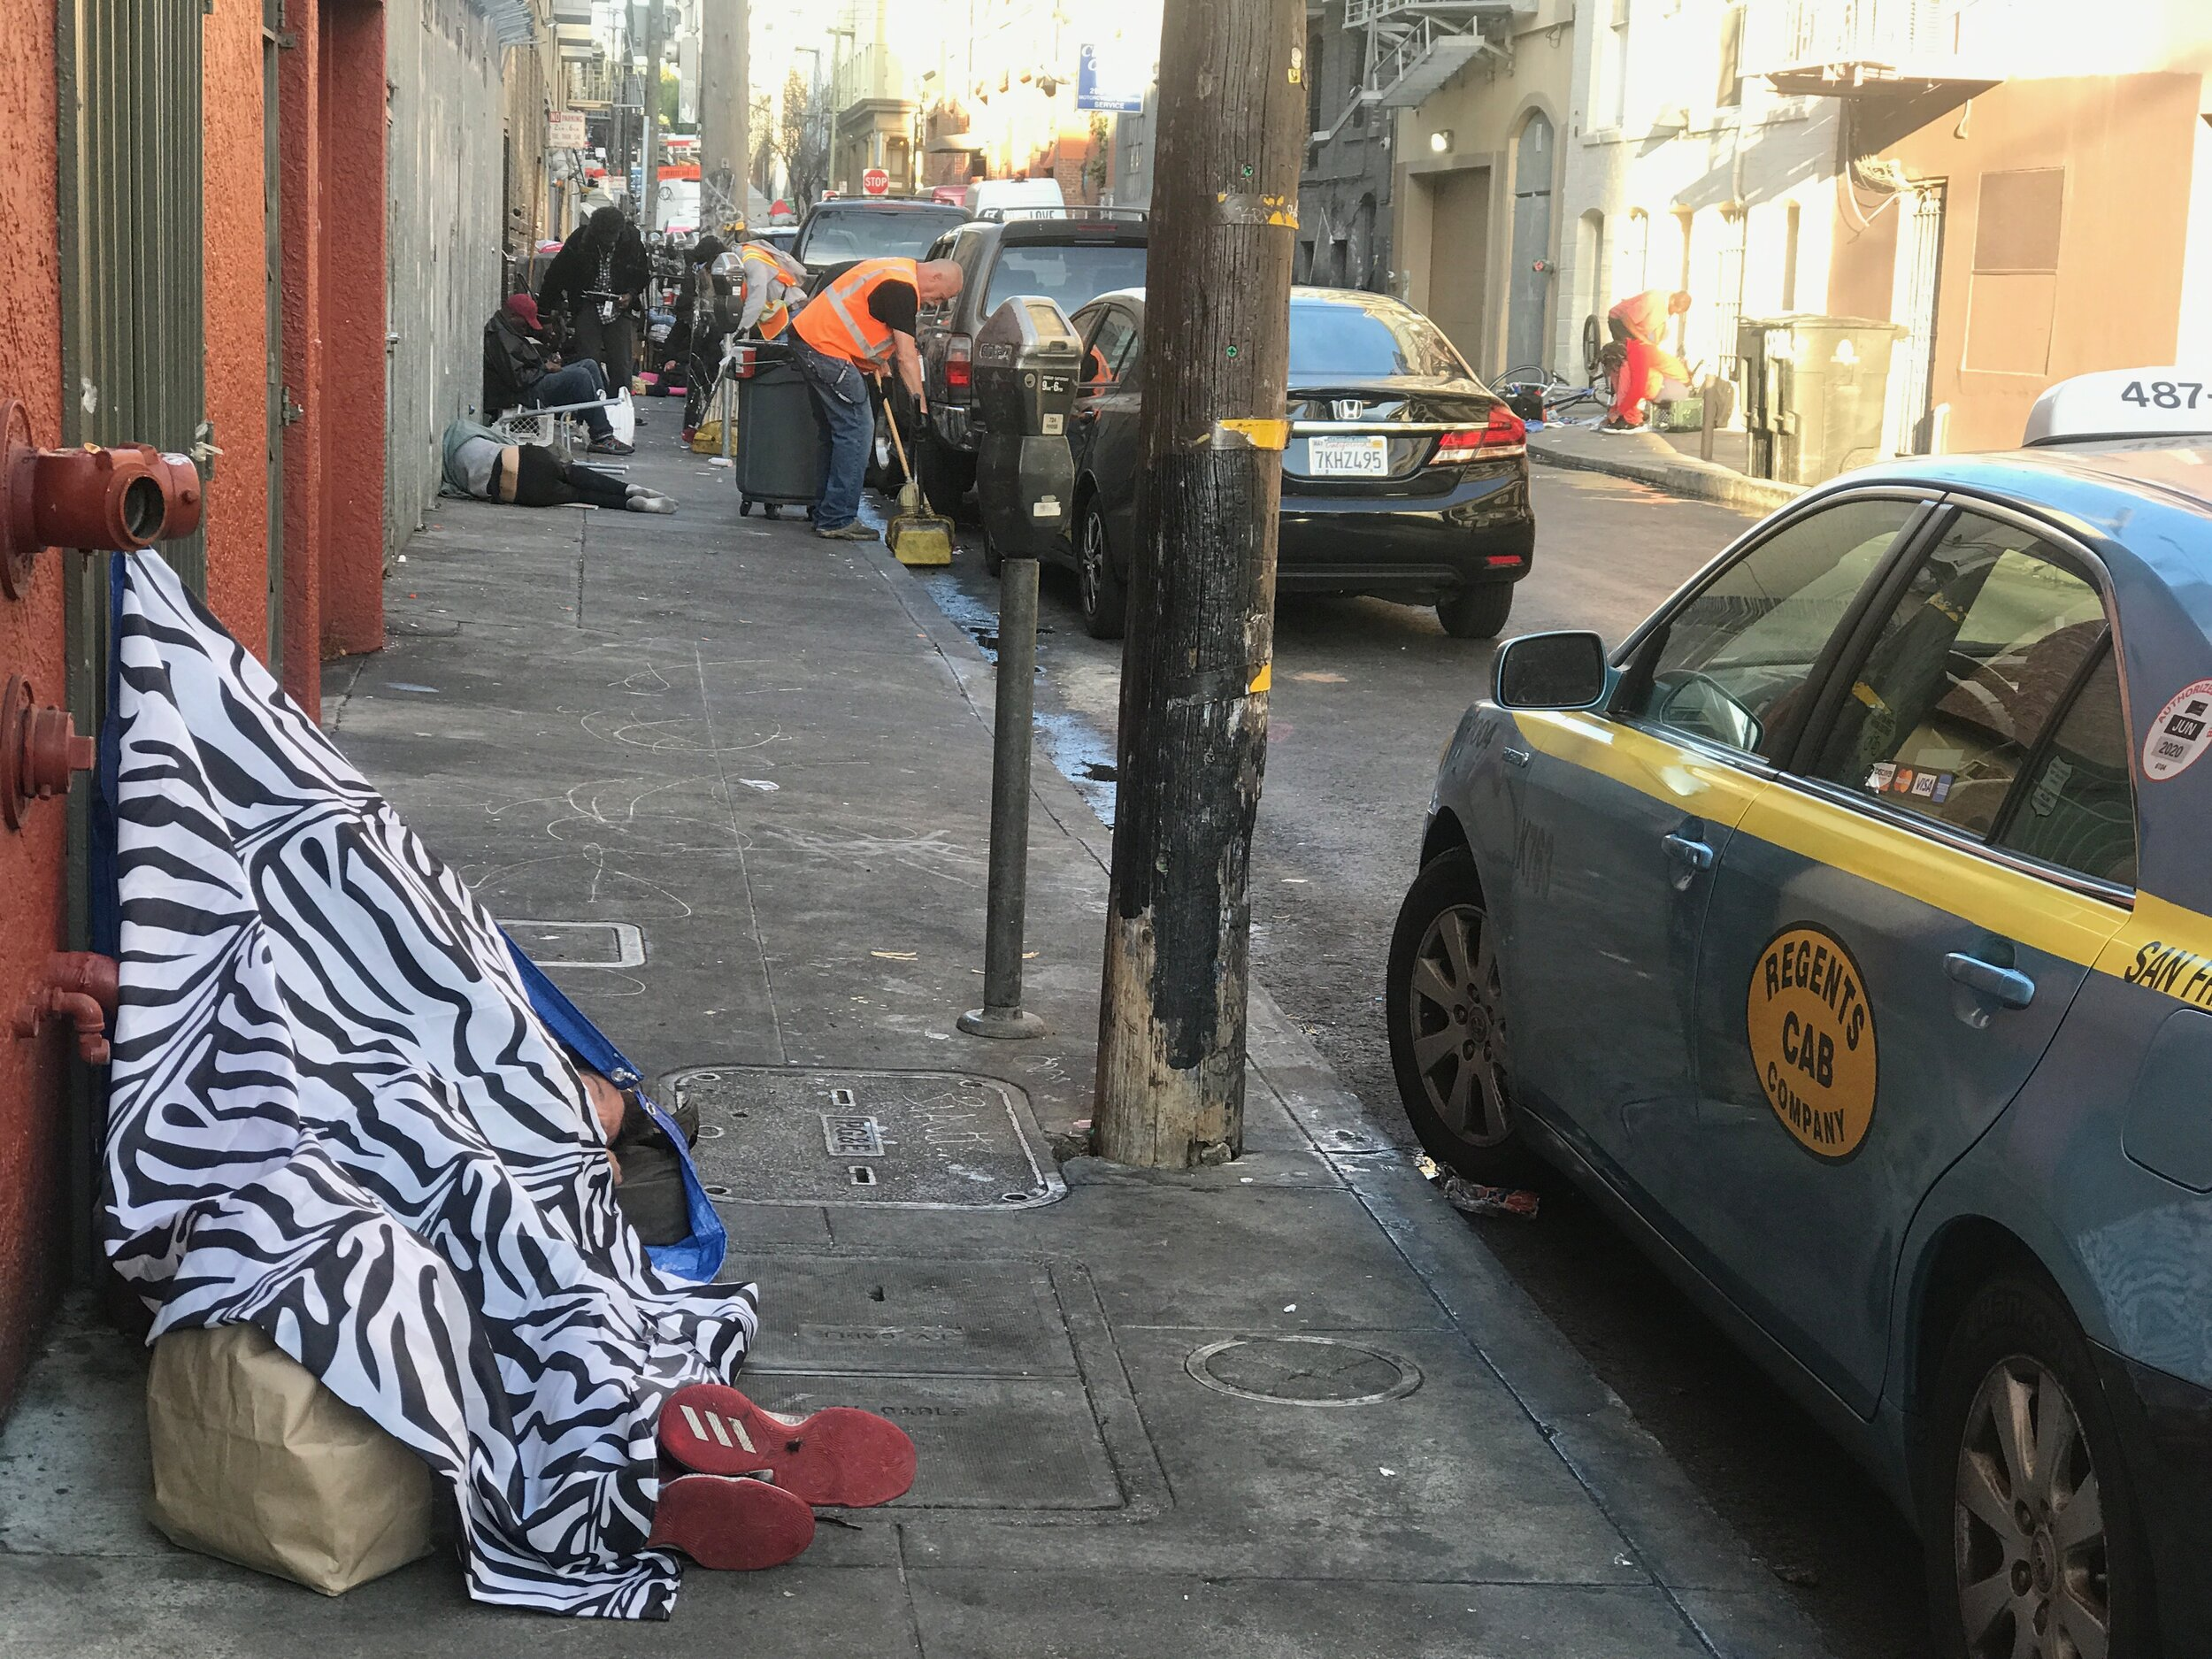 City workers carefully clean up sidewalks in the Tenderloin without disturbing sleeping homeless people. For a century, the Tenderloin has been a haven for the down-and-out.